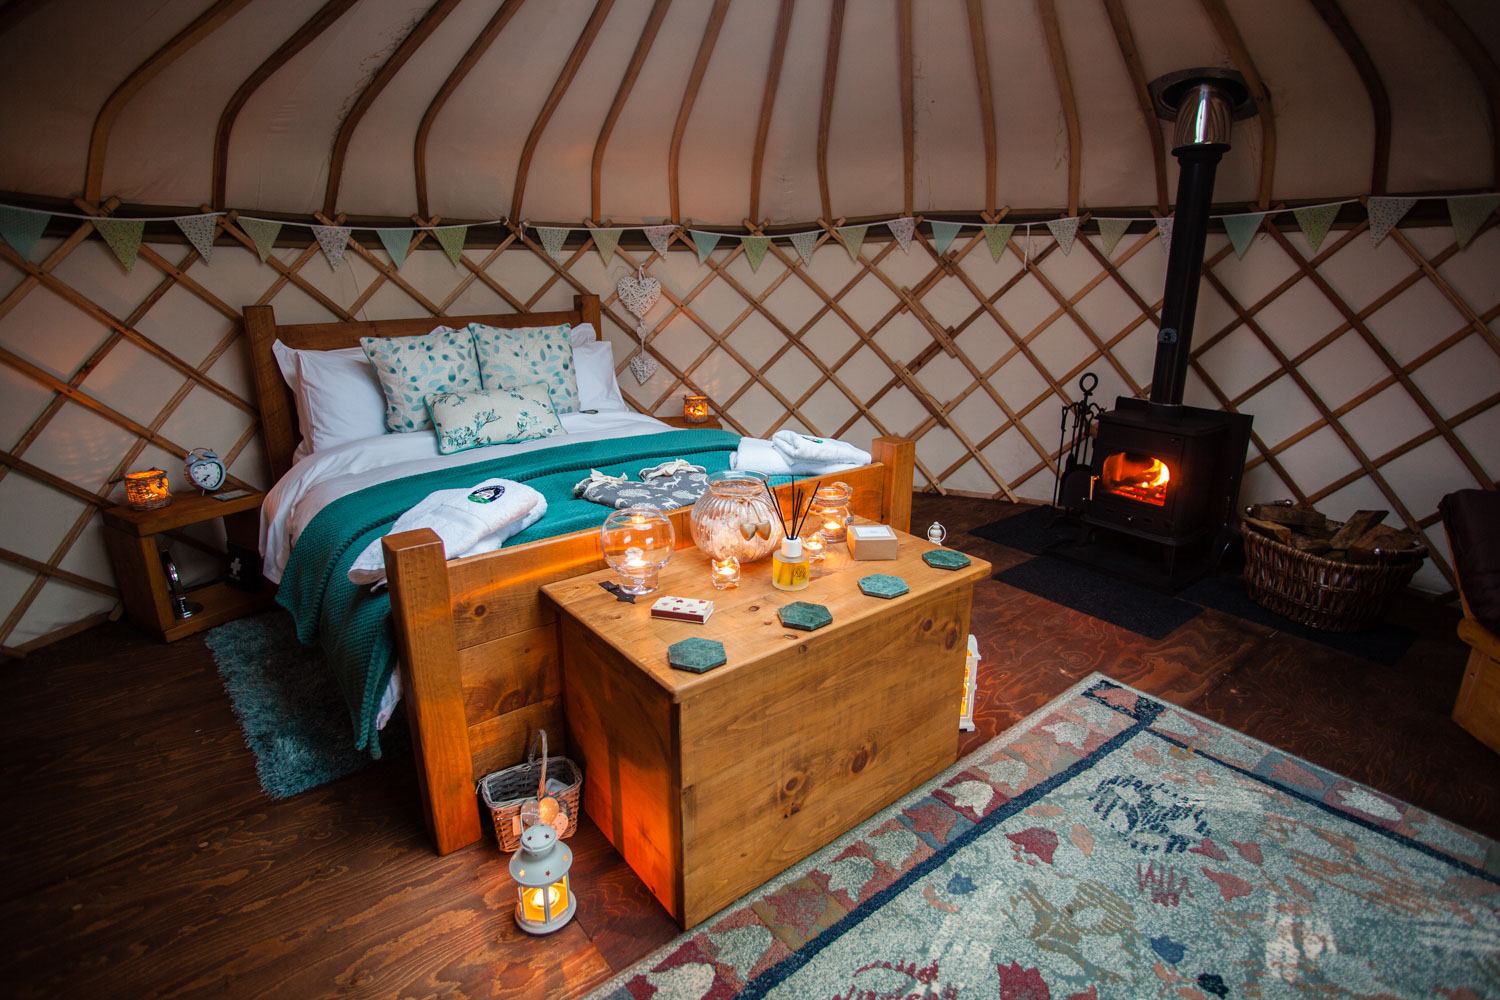 The yurts offer a warm welcome each with their own log burner